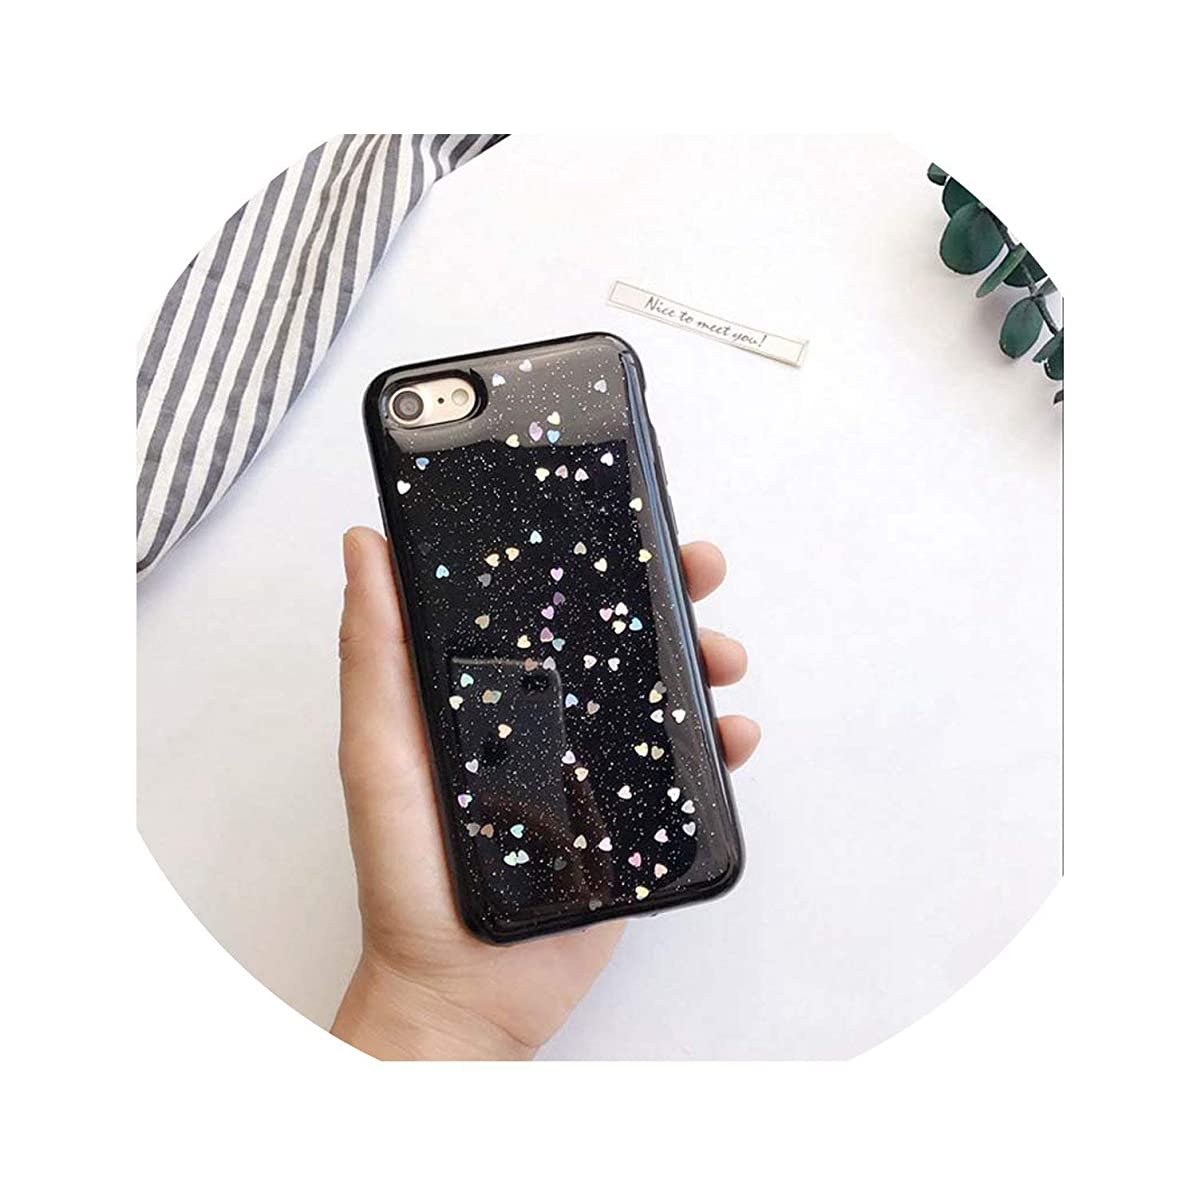 Bling Star Glitter Soft TPU Phone Cases for iPhone Xs Max XR X 8 7 6 6S Plus 5 5S SE Shimmering Powder Transparent Cover,Love Black,for iPhone Xs Max